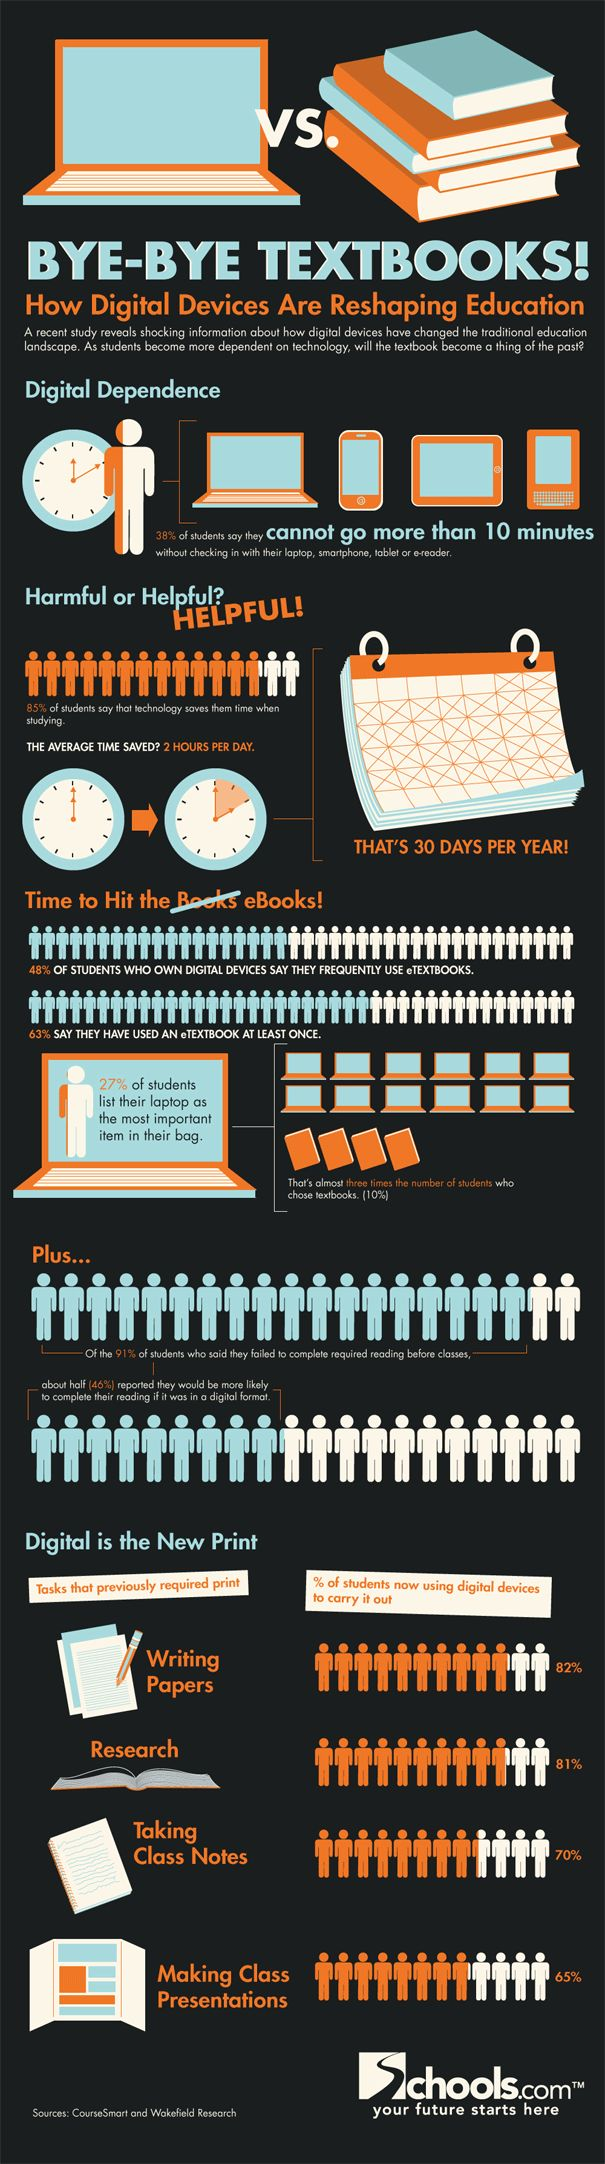 How Digital Devices Are Reshaping Education :: #Infographic